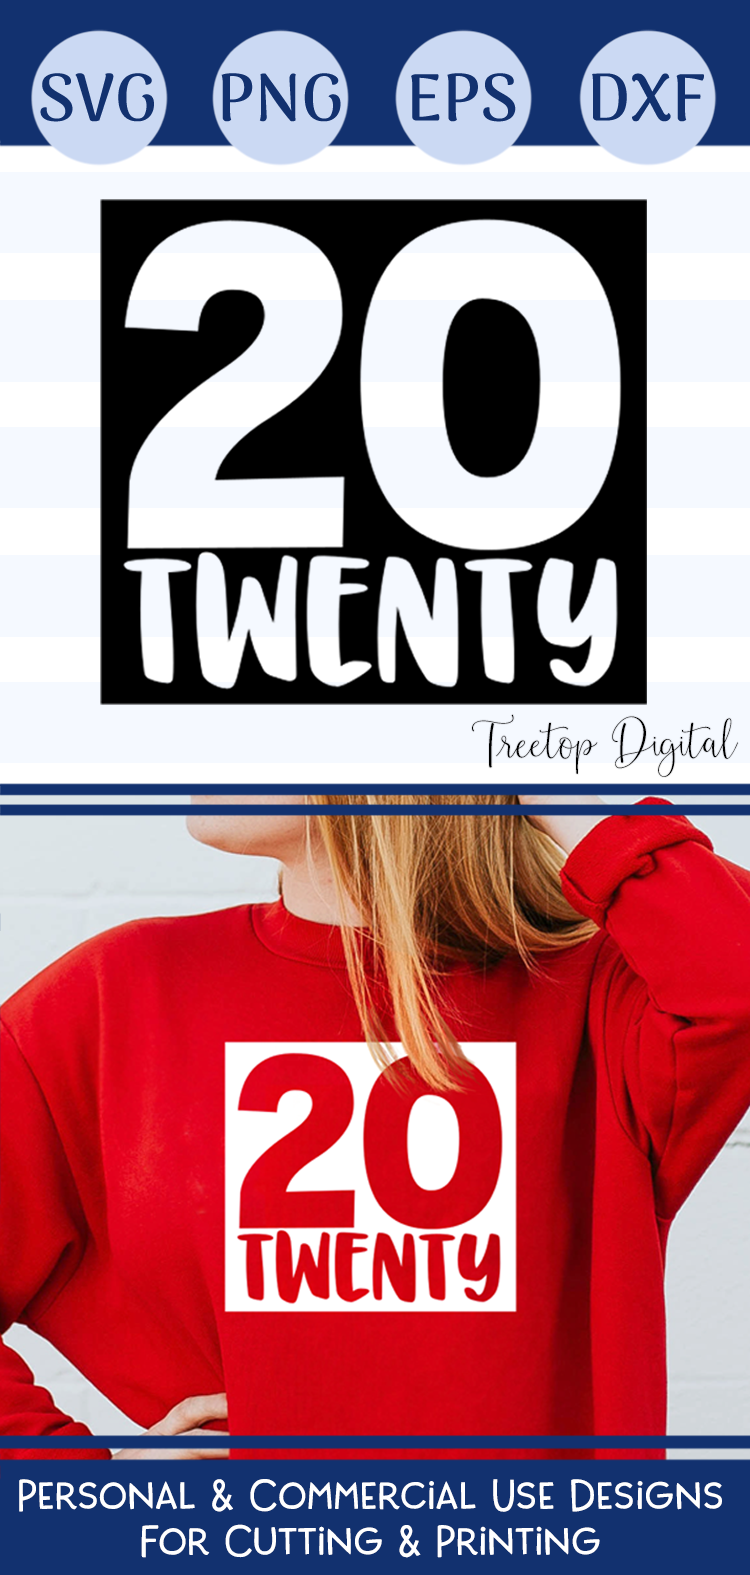 2020, A 20 Twenty New Year SVG Cut or Print File example image 6